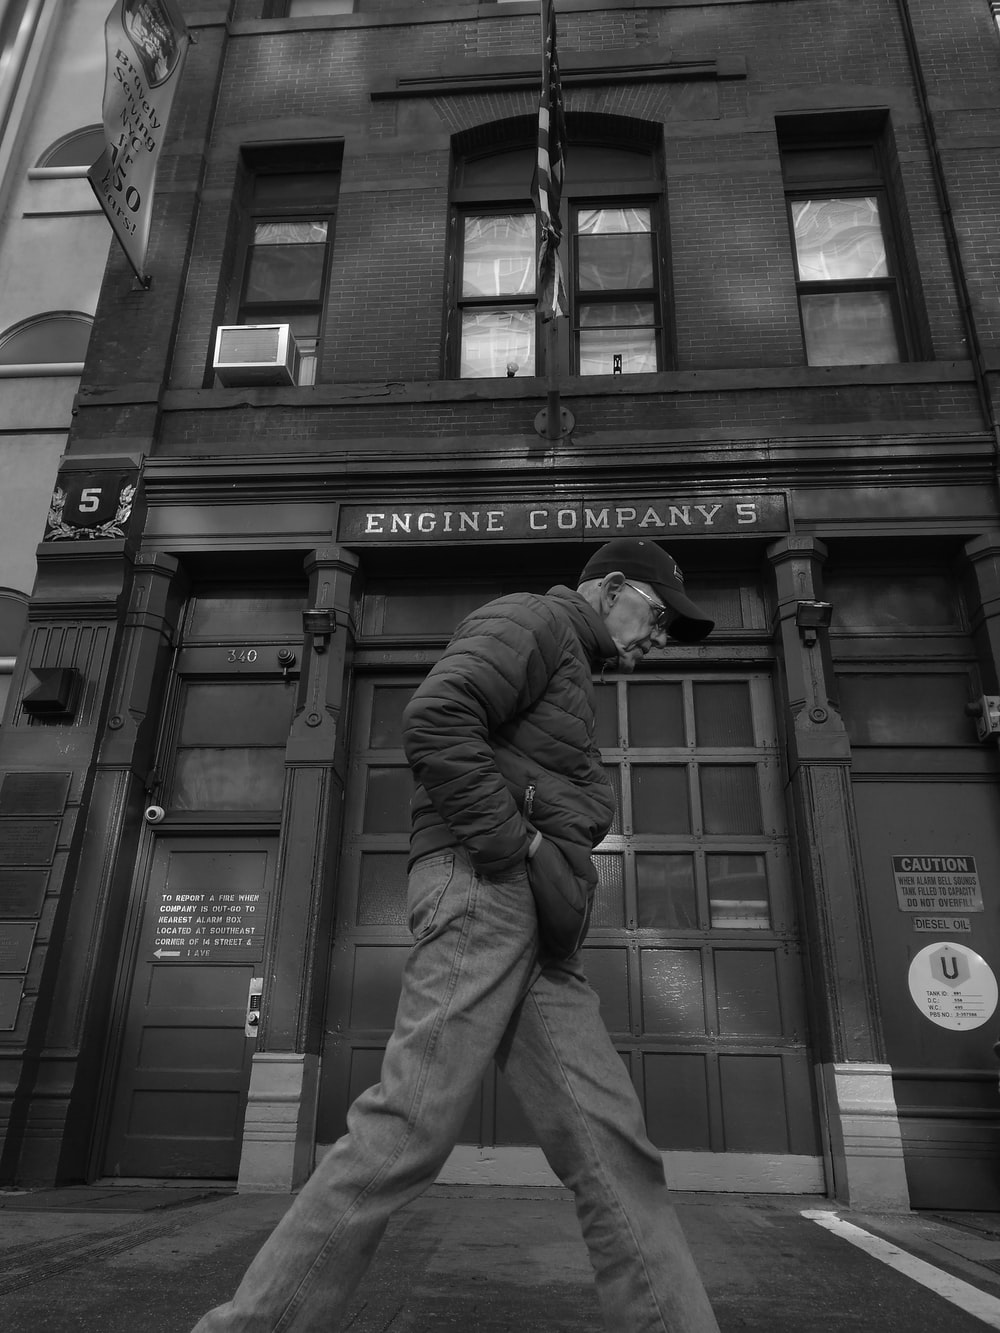 greyscale photo of man walking near Engine Company building